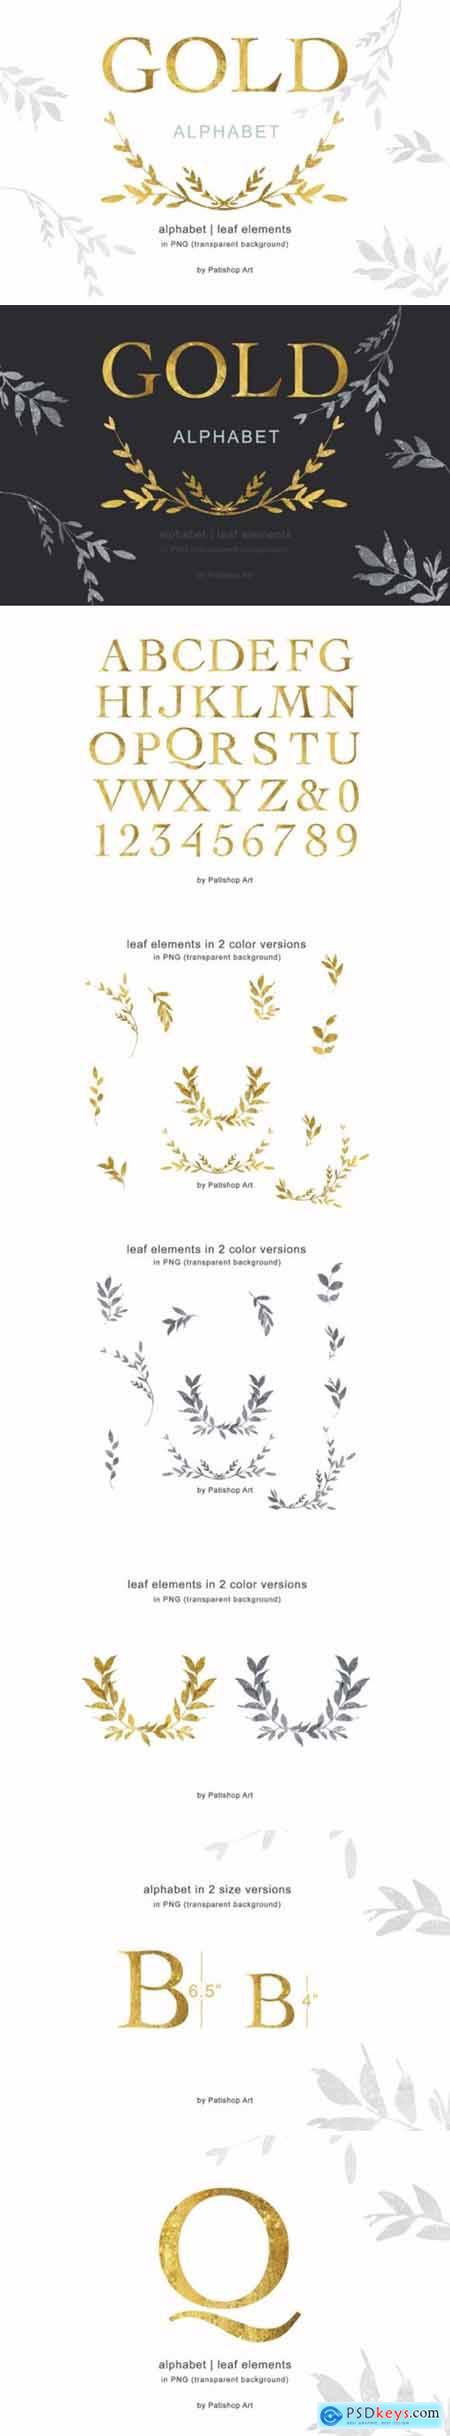 Gold Alphabet & Leaf Clip Art Collection 3623138